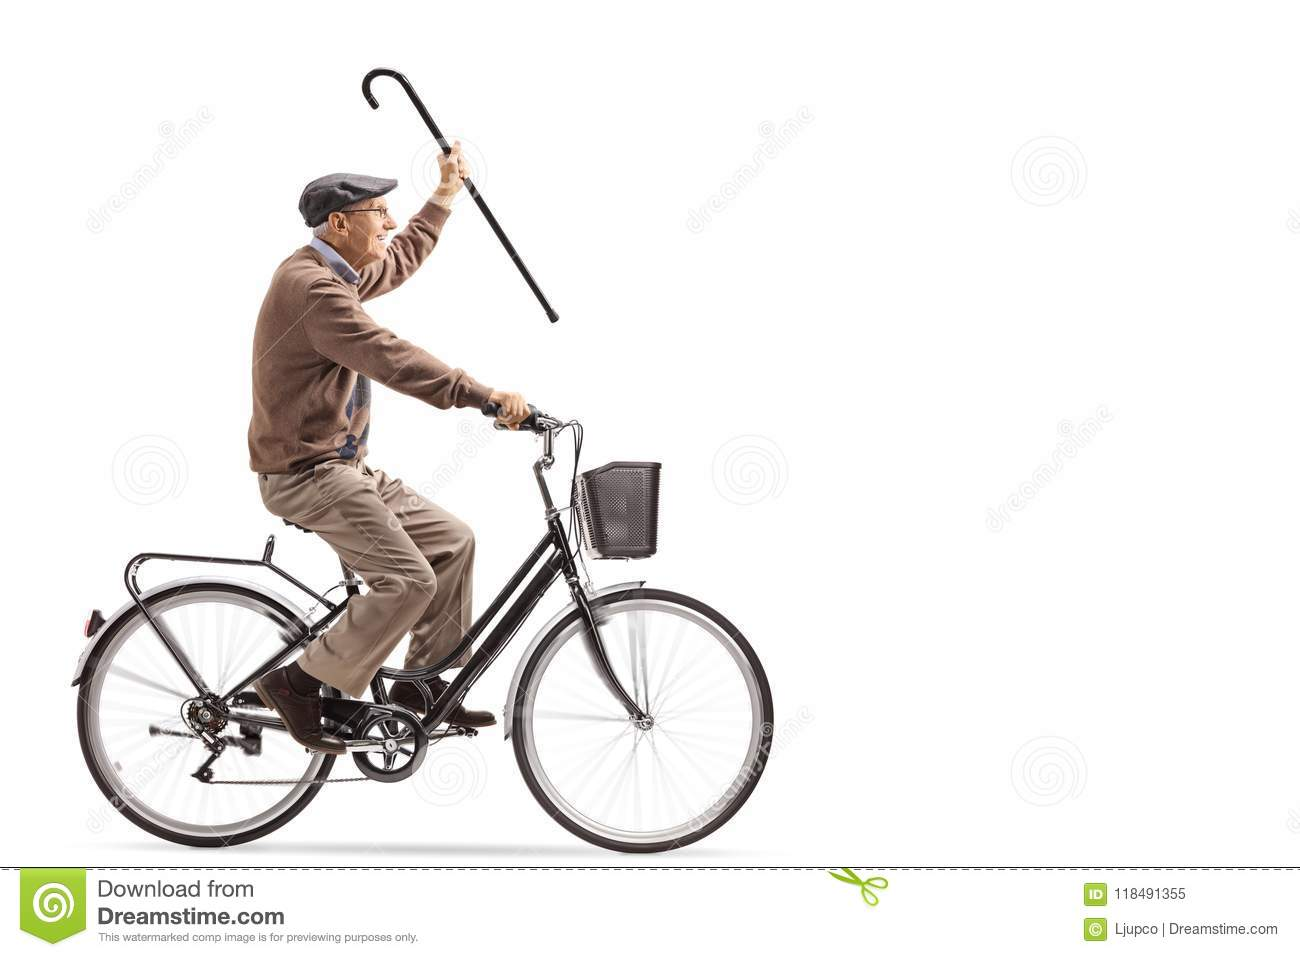 Senior holding a cane and riding a bicycle